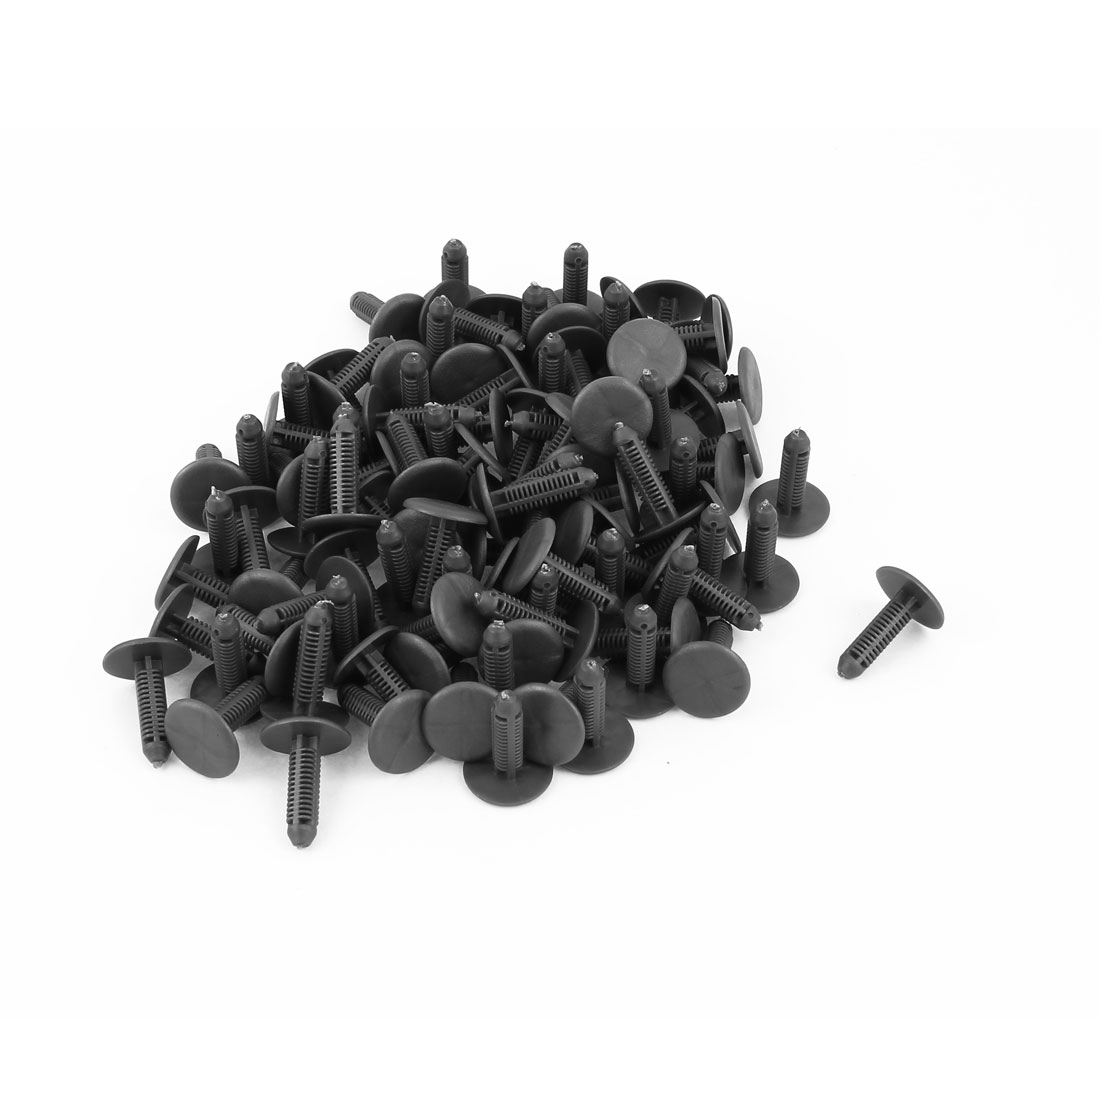 100 PCS 6mm Hole Plastic Push Screw Rivet Panel Fixings Clips Gray for Car Auto